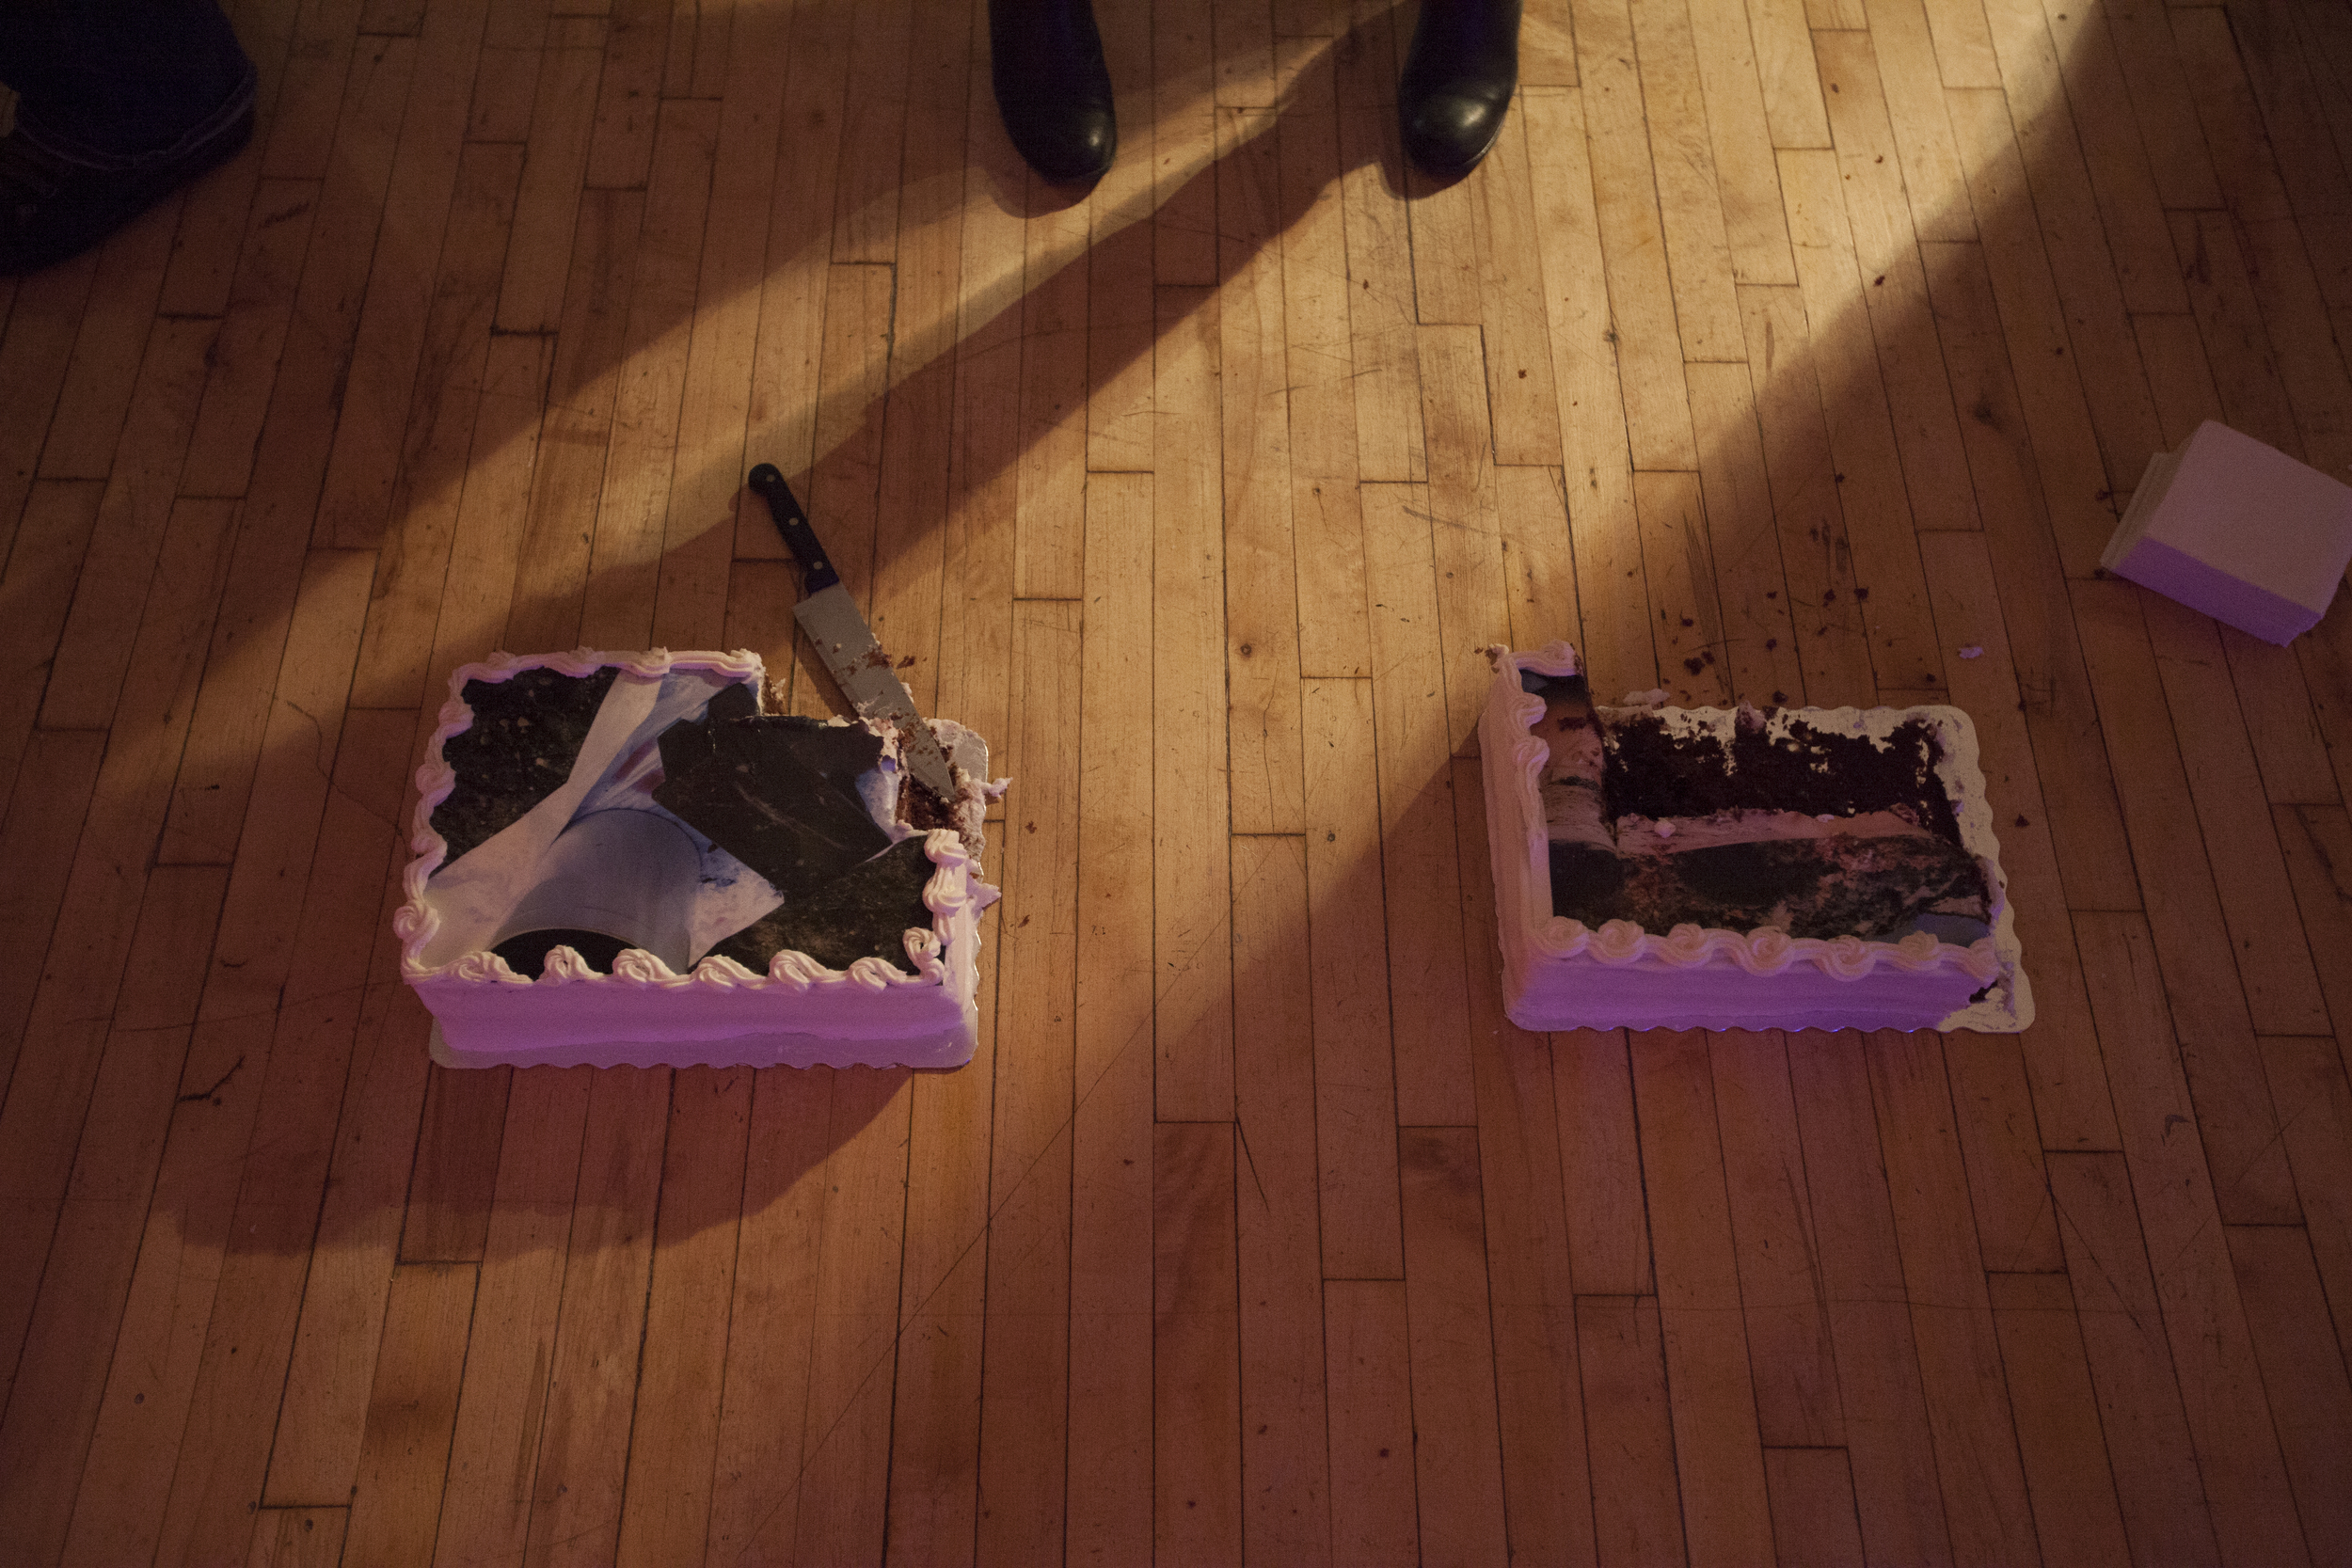 Detail, Roxanne D. Crocker's   CAKE   at the opening of  you know it when you feel it  as part of Lisi Raskin's  Recuperative Tactics  , Art in General, April 19, 2014. Image credit: Steven Probert